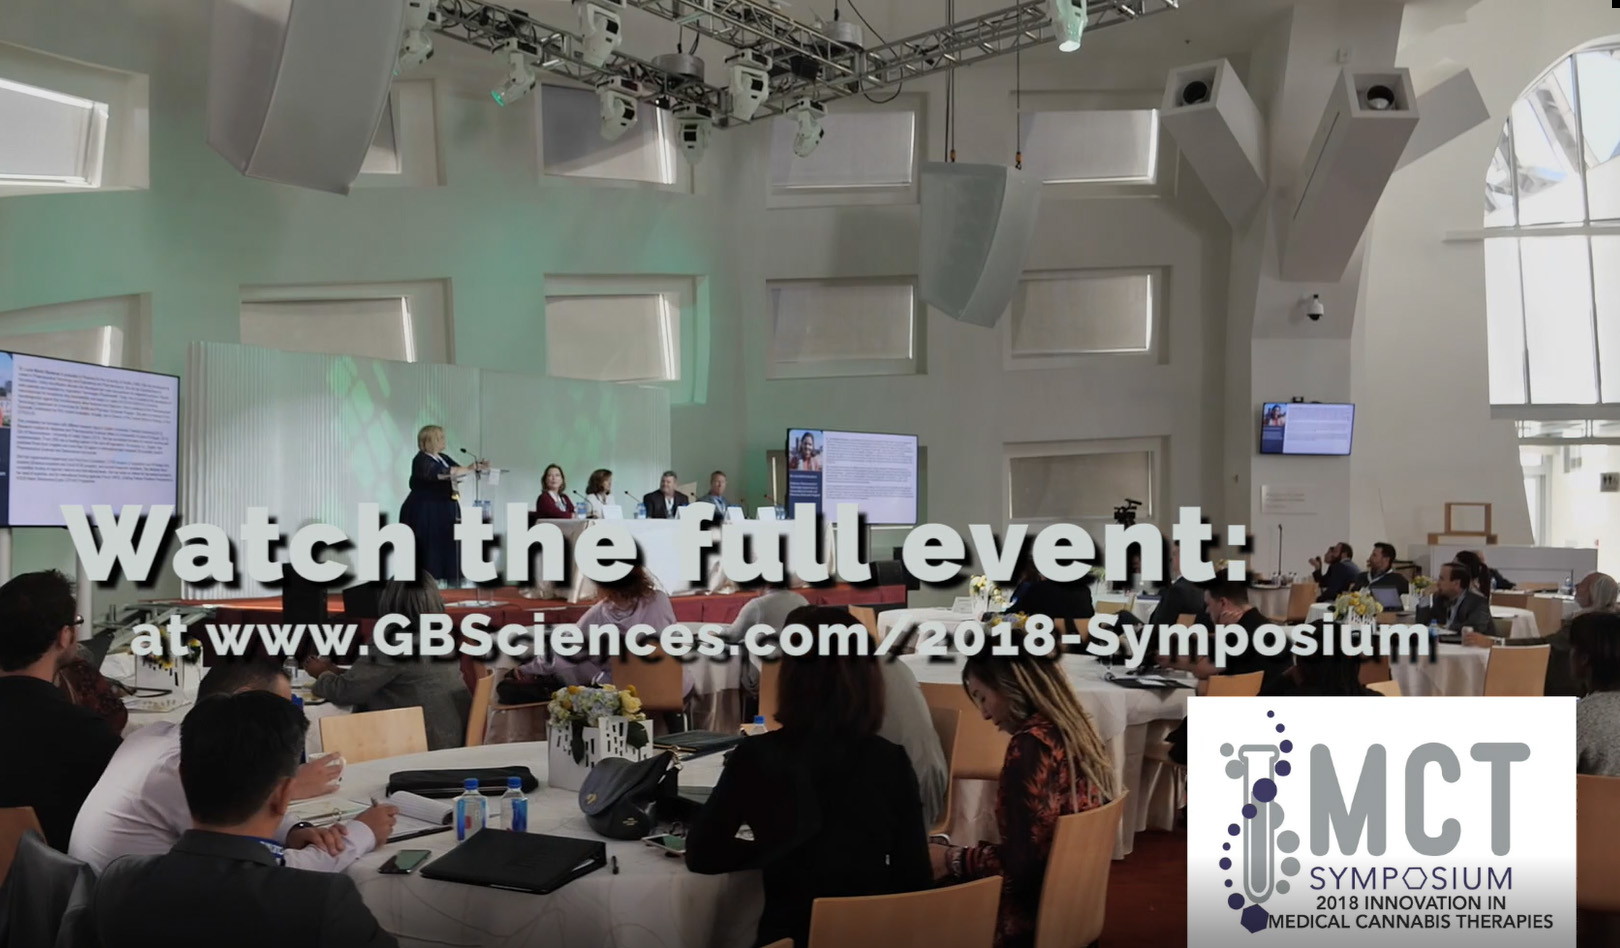 Clips from the 2018 Innovation in Medical Cannabis Therapies Symposium in Las Vegas on Oct. 9, 2018